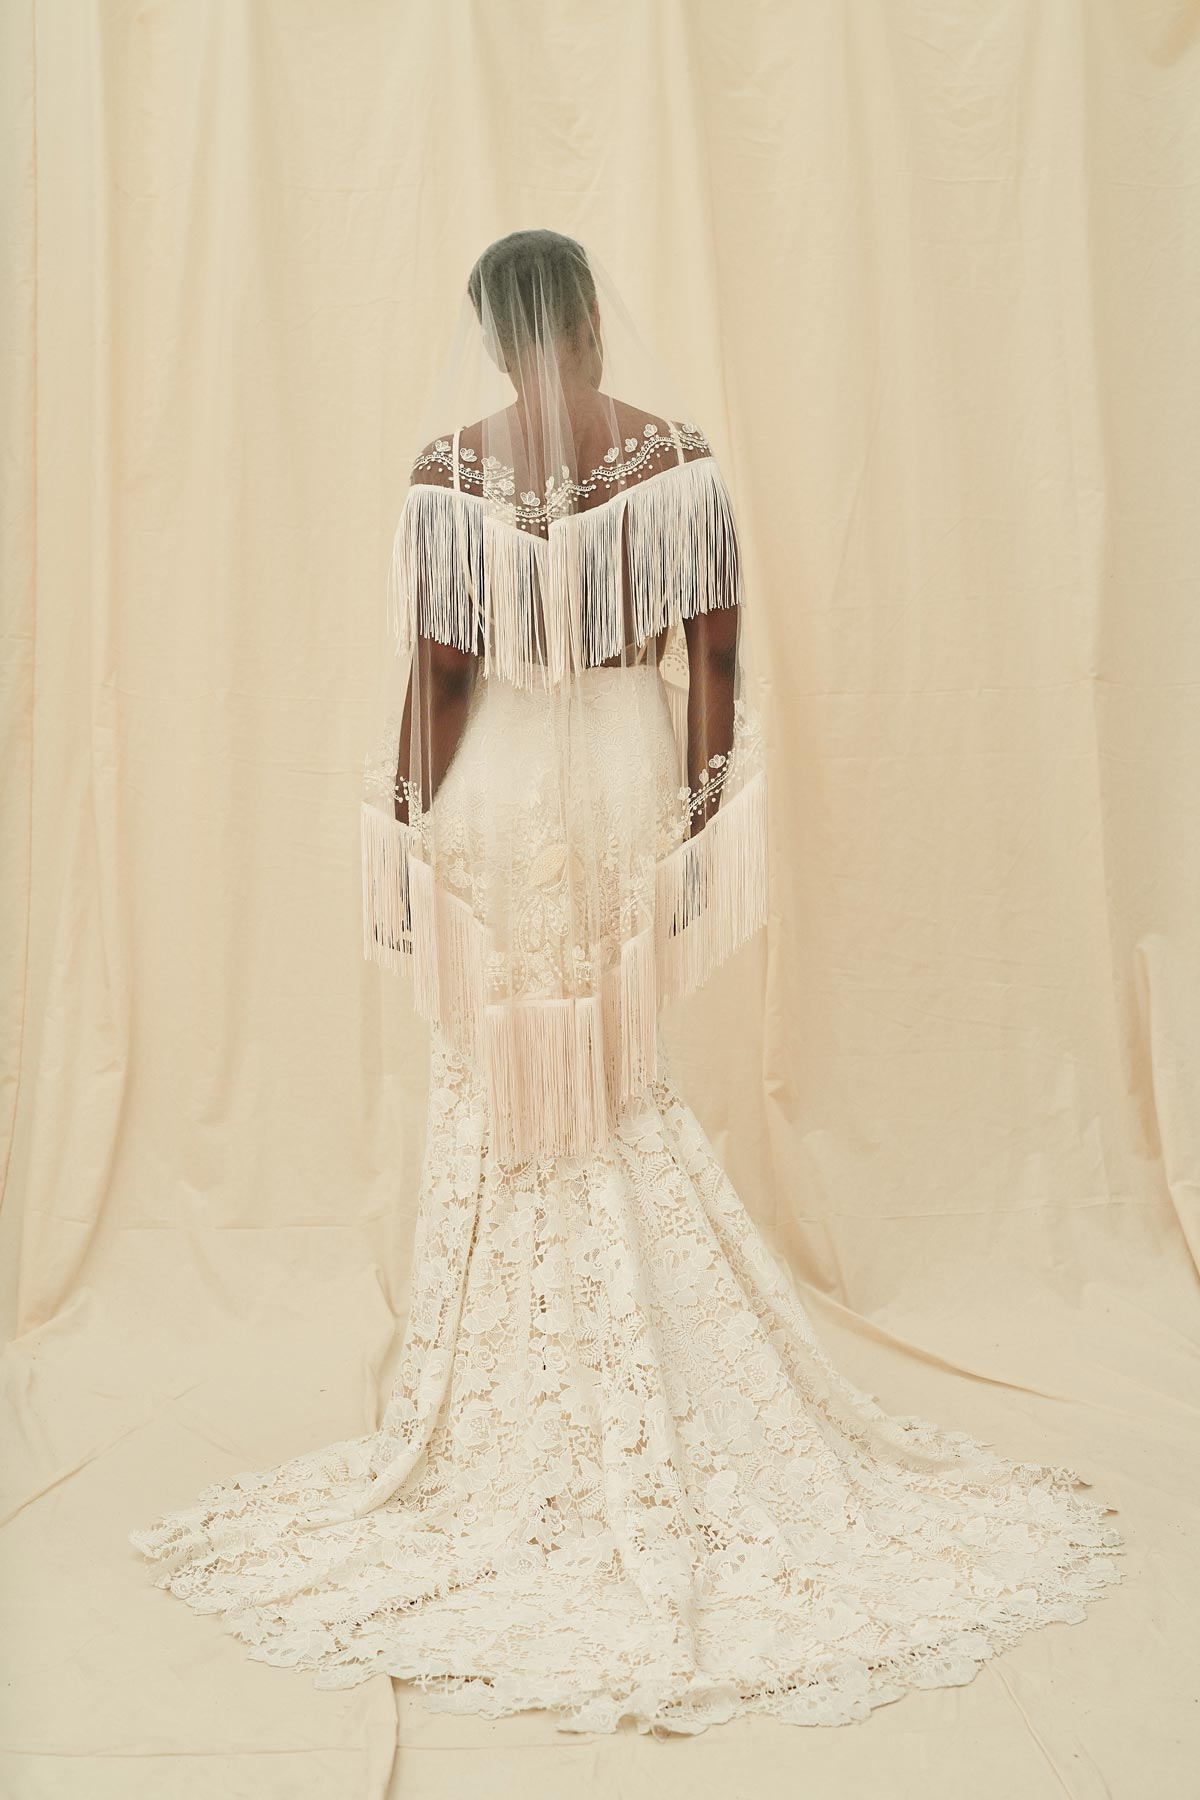 Boho bridal veil made with tulle, flower embroidery, and a long fringe trim